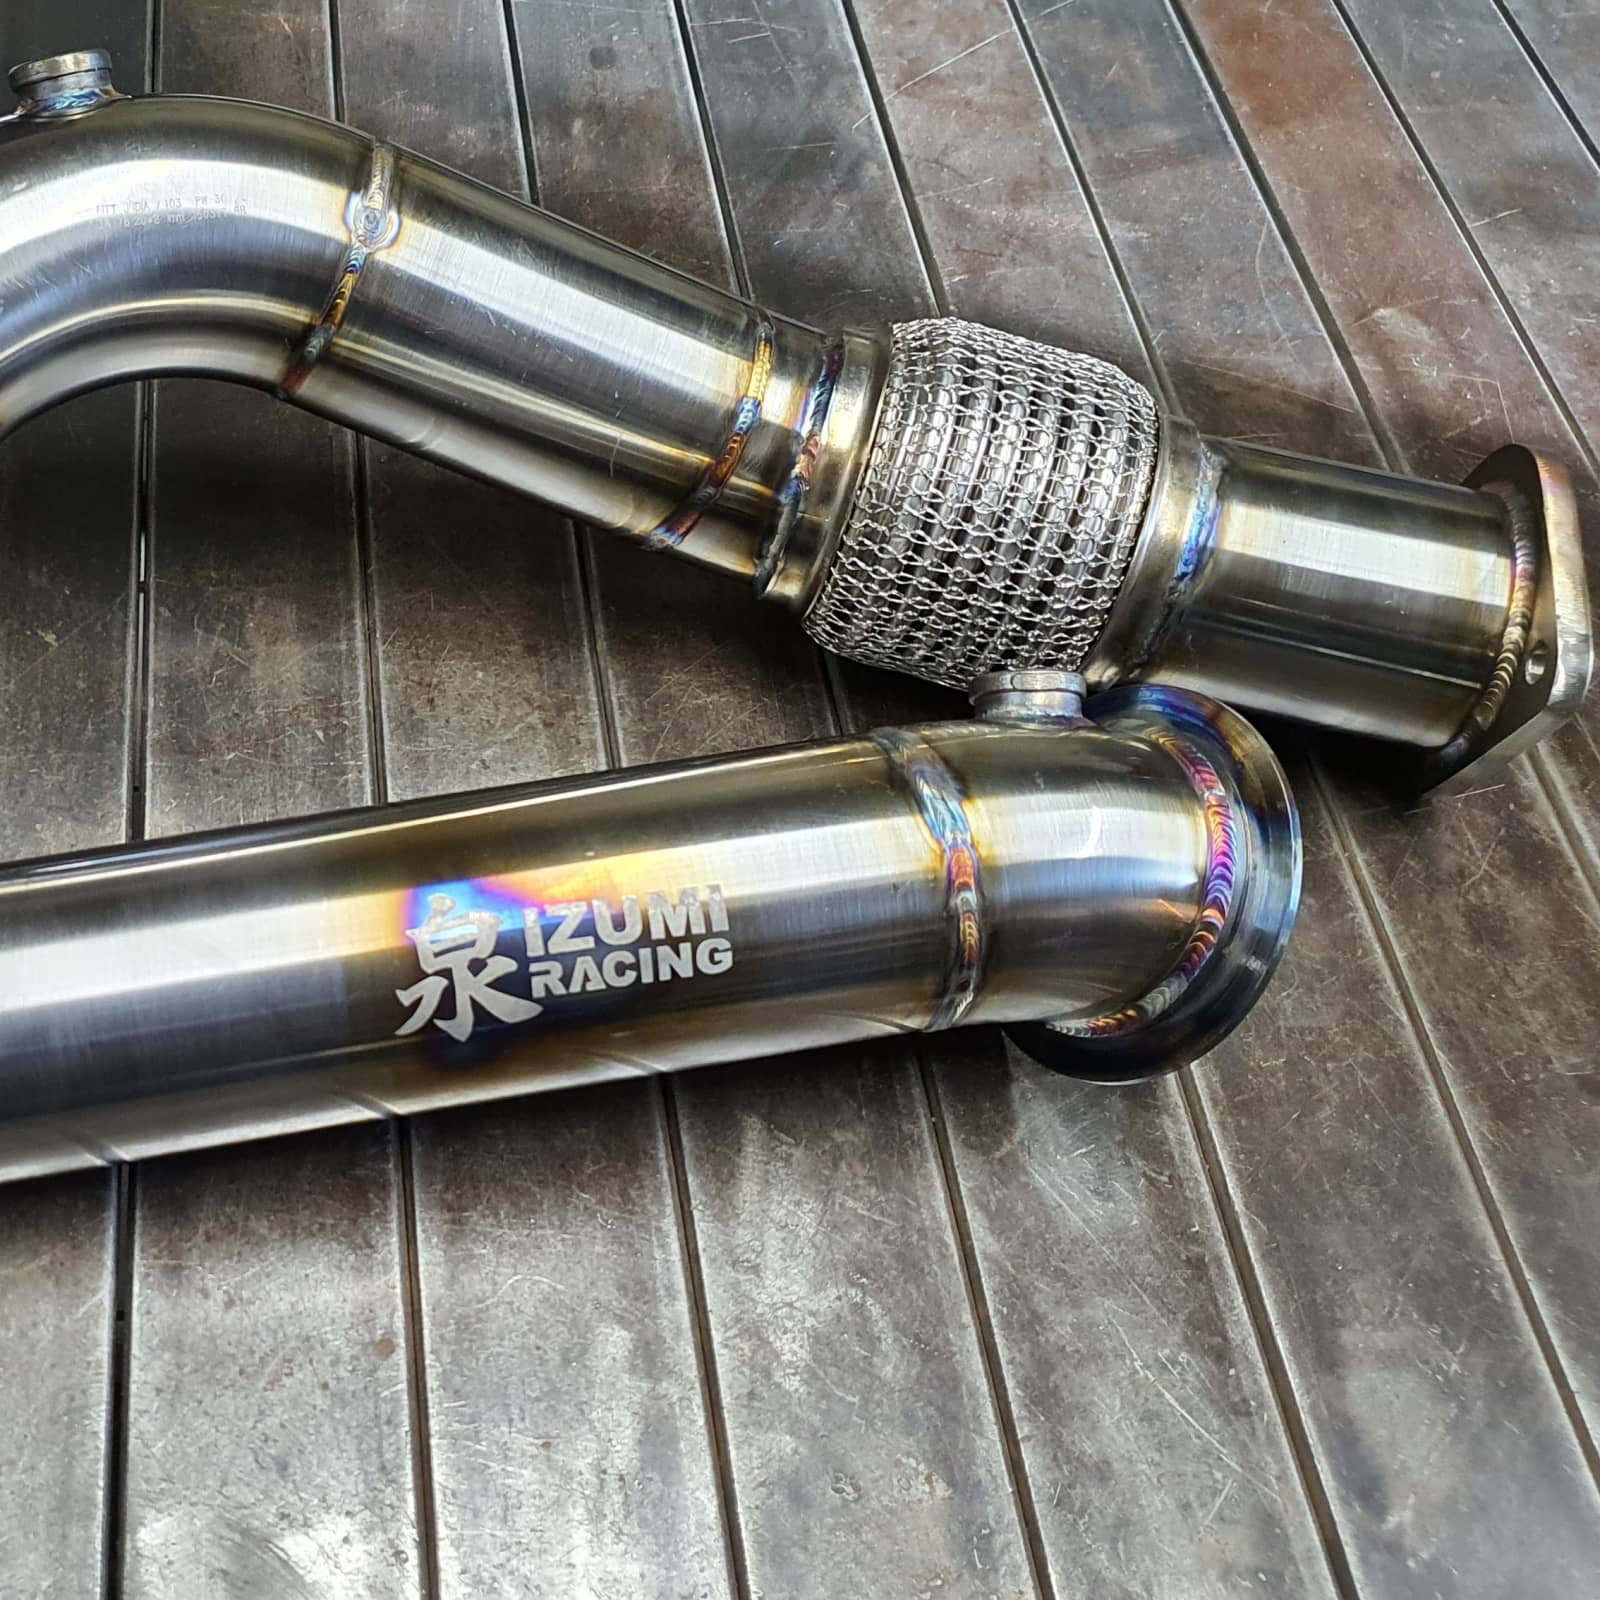 Downpipe BMW X3 M Competition